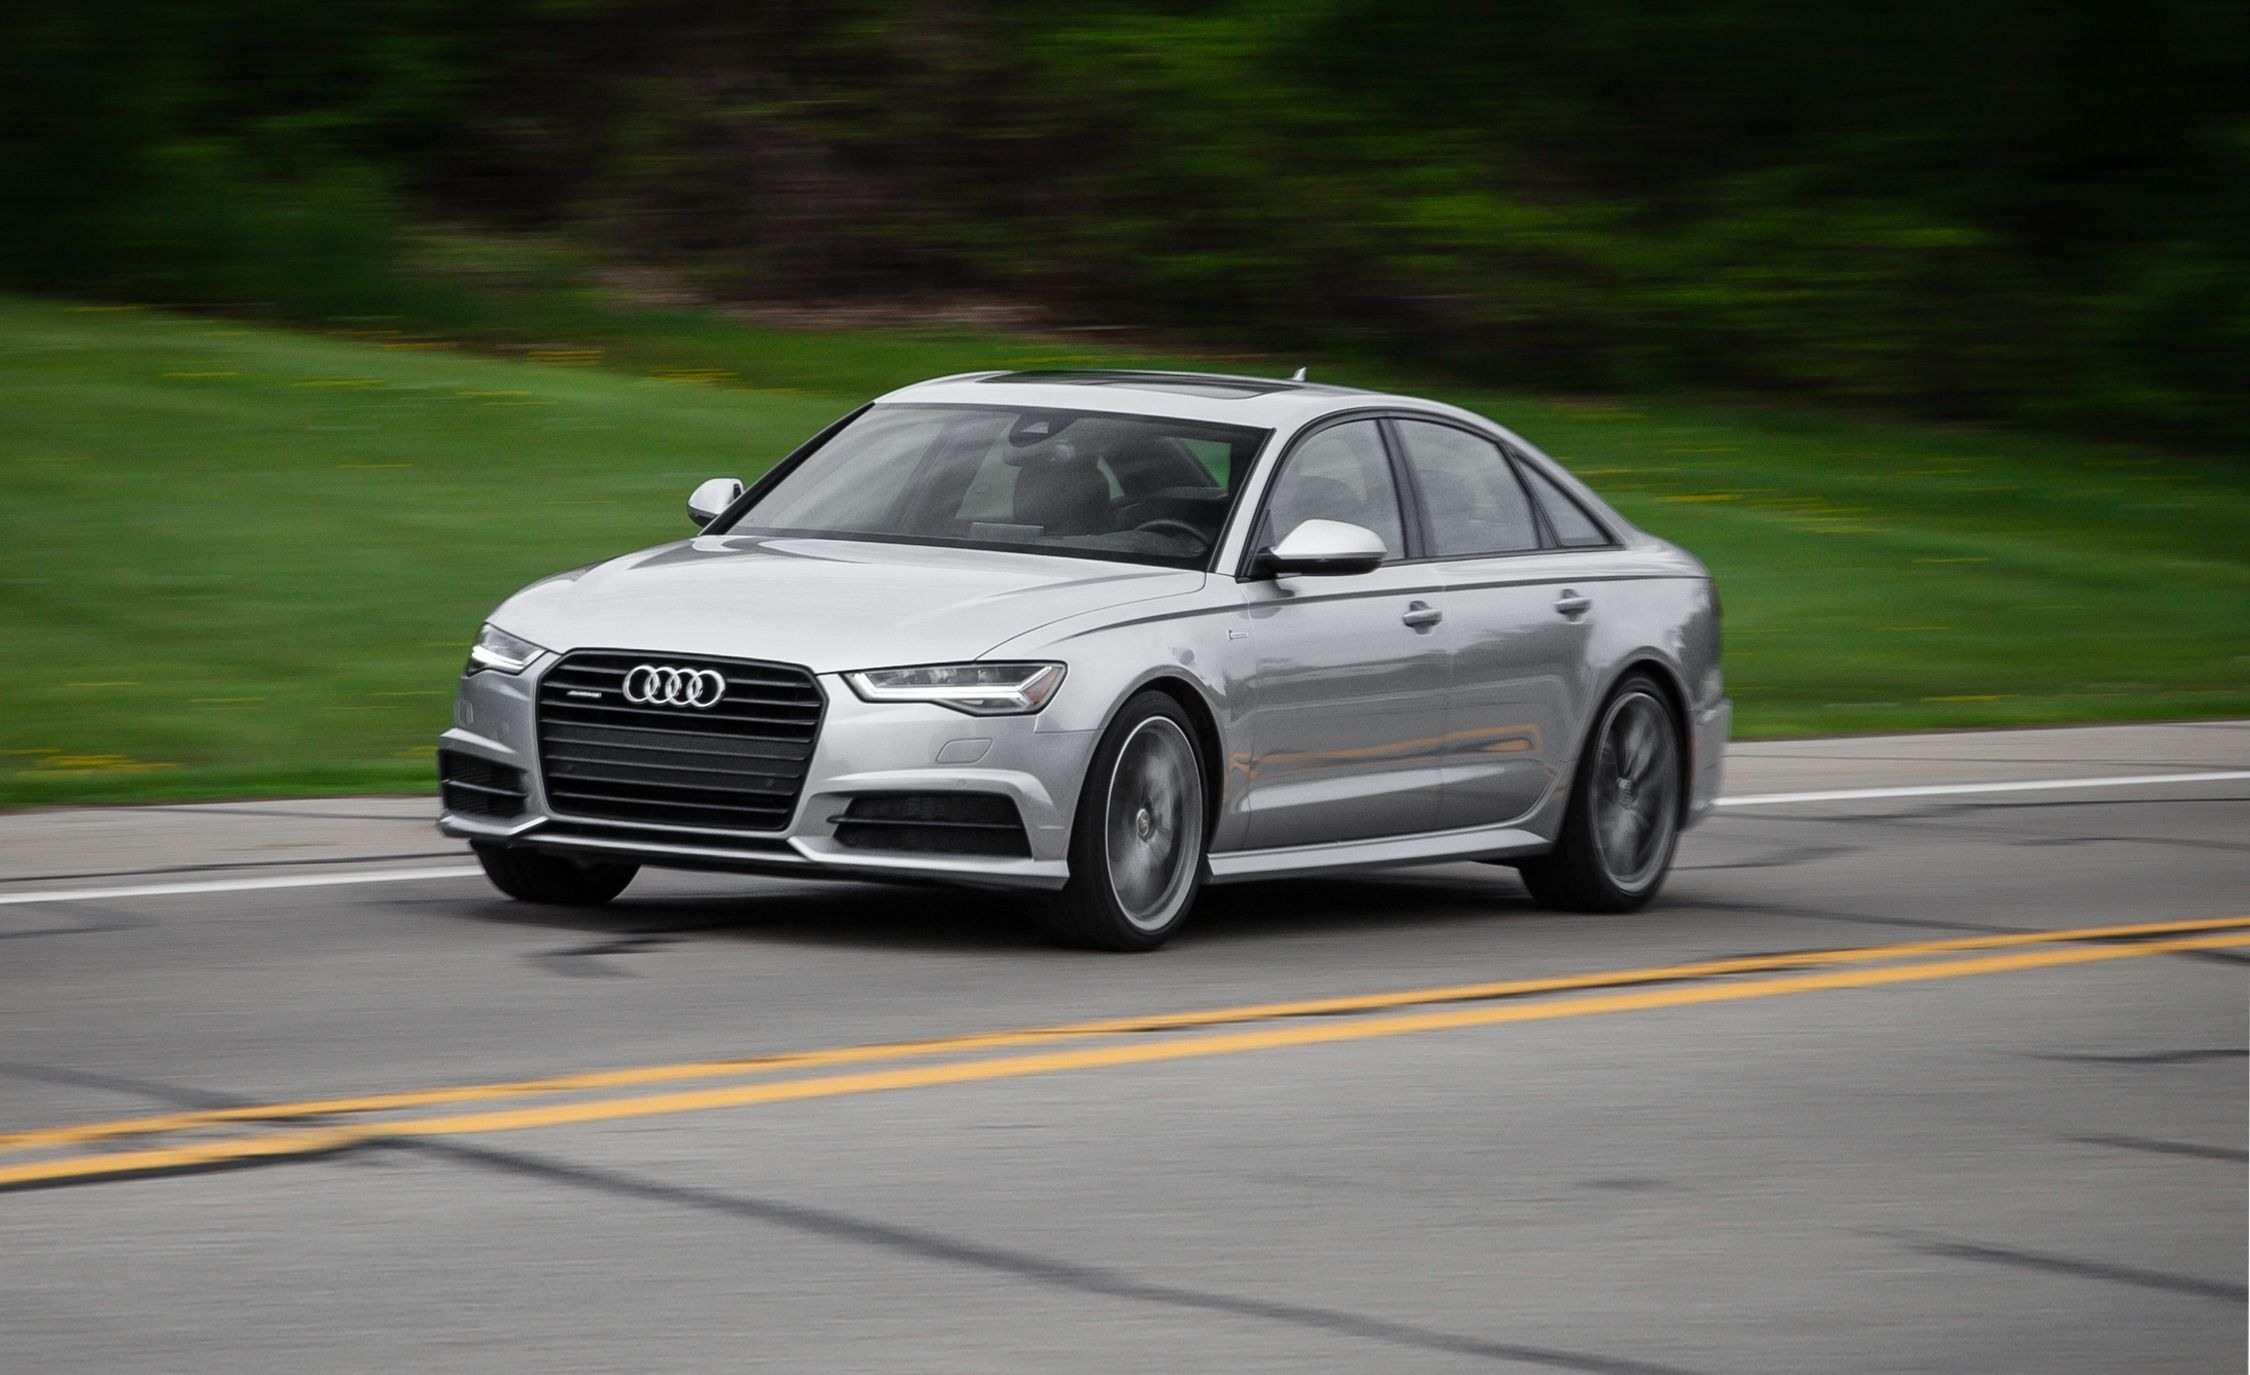 55 All New Review Audi 2019 A6 New Interior Pricing with Review Audi 2019 A6 New Interior